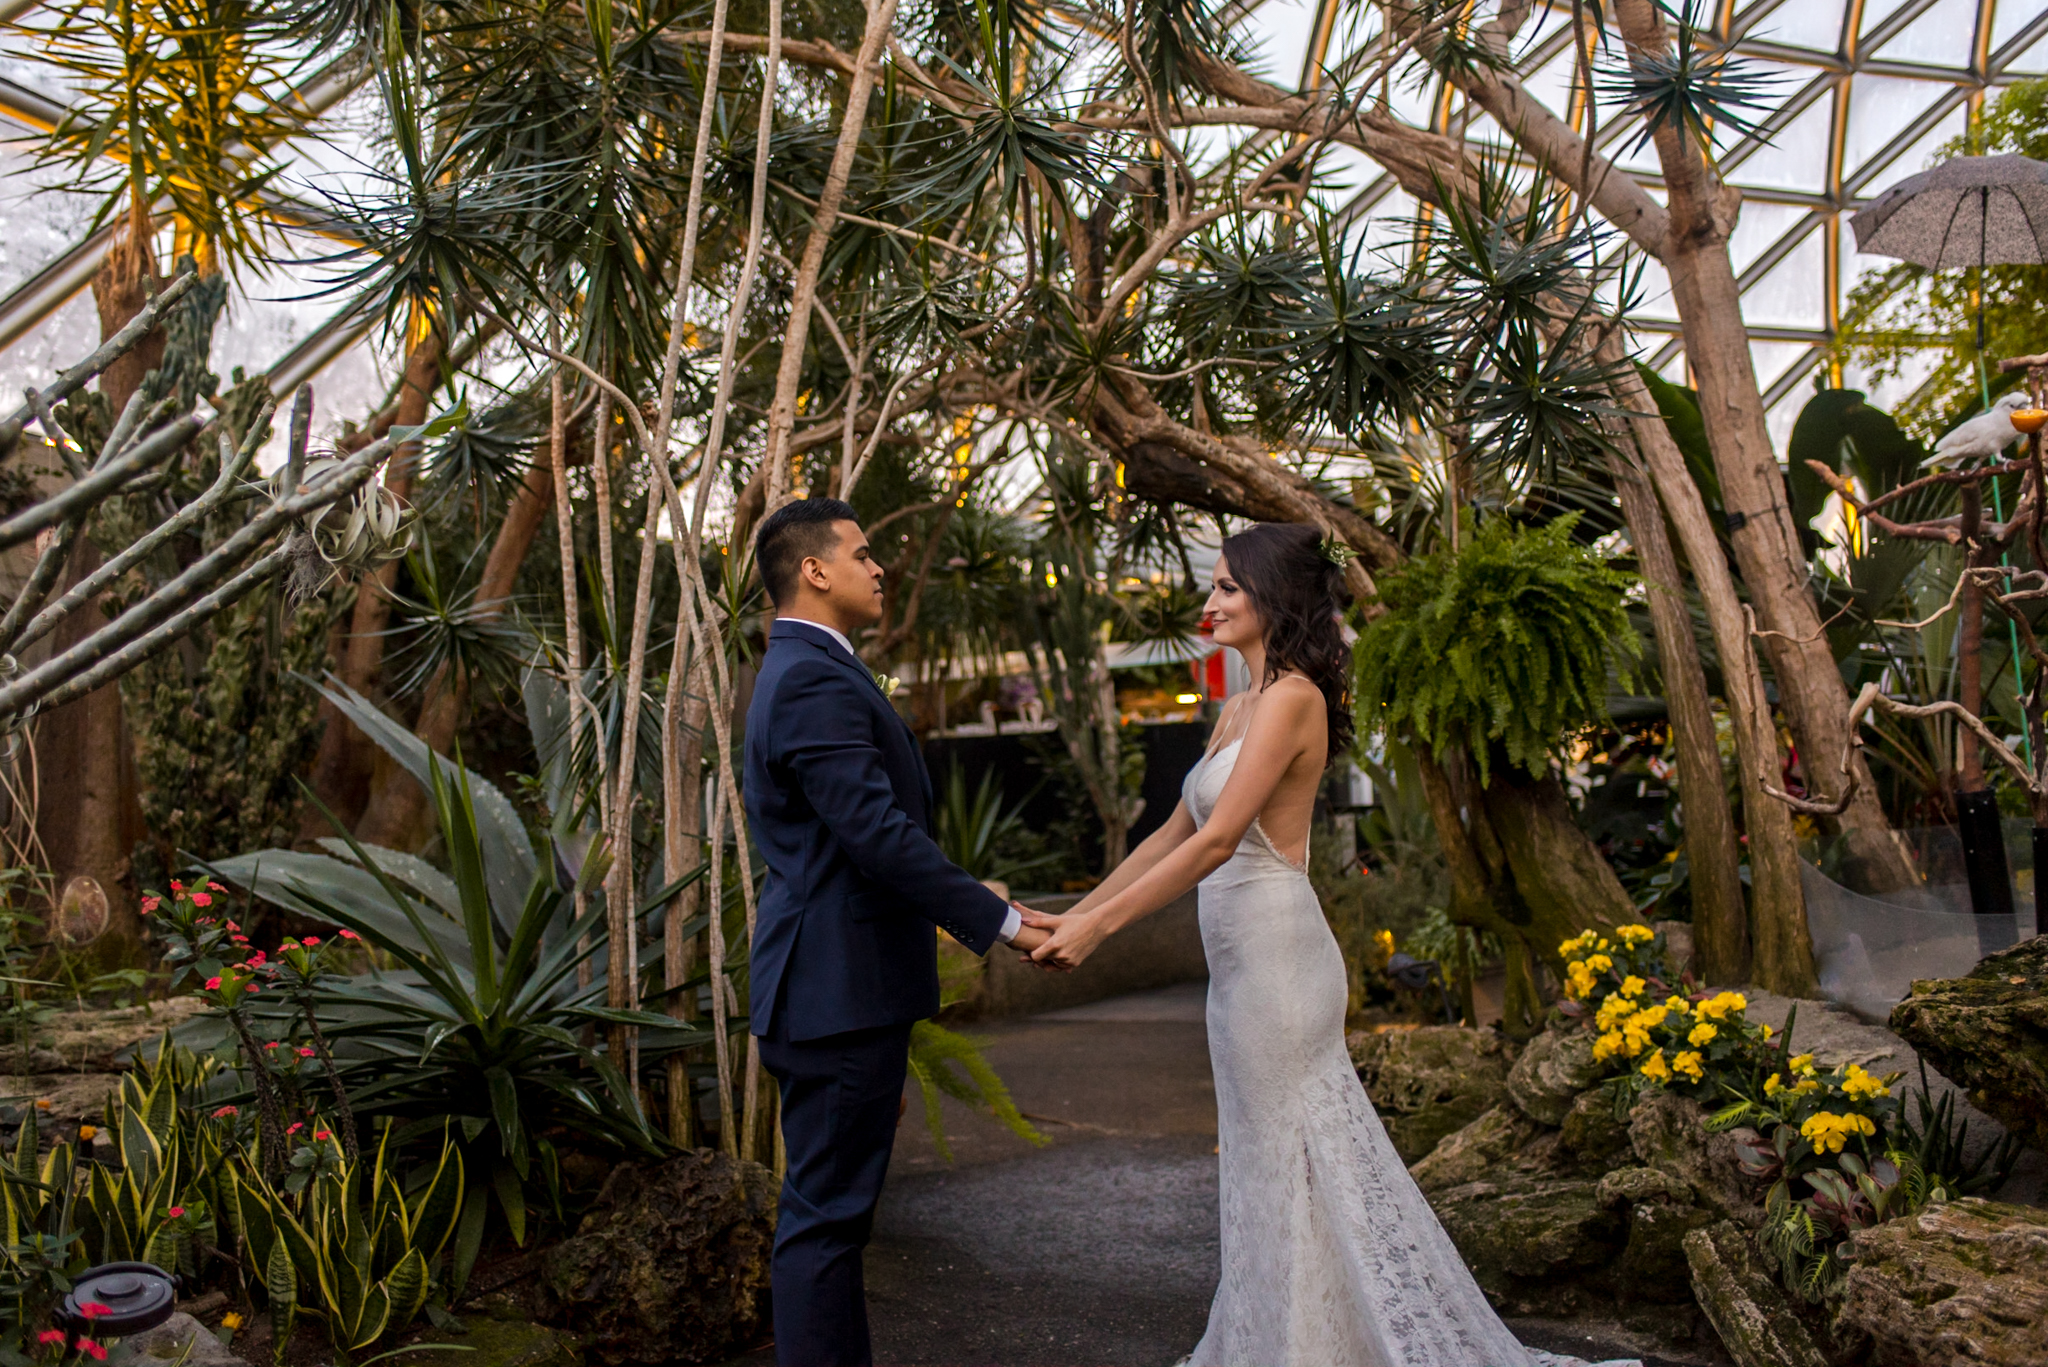 Queen Elizabeth Park Wedding Photographer-69.jpg